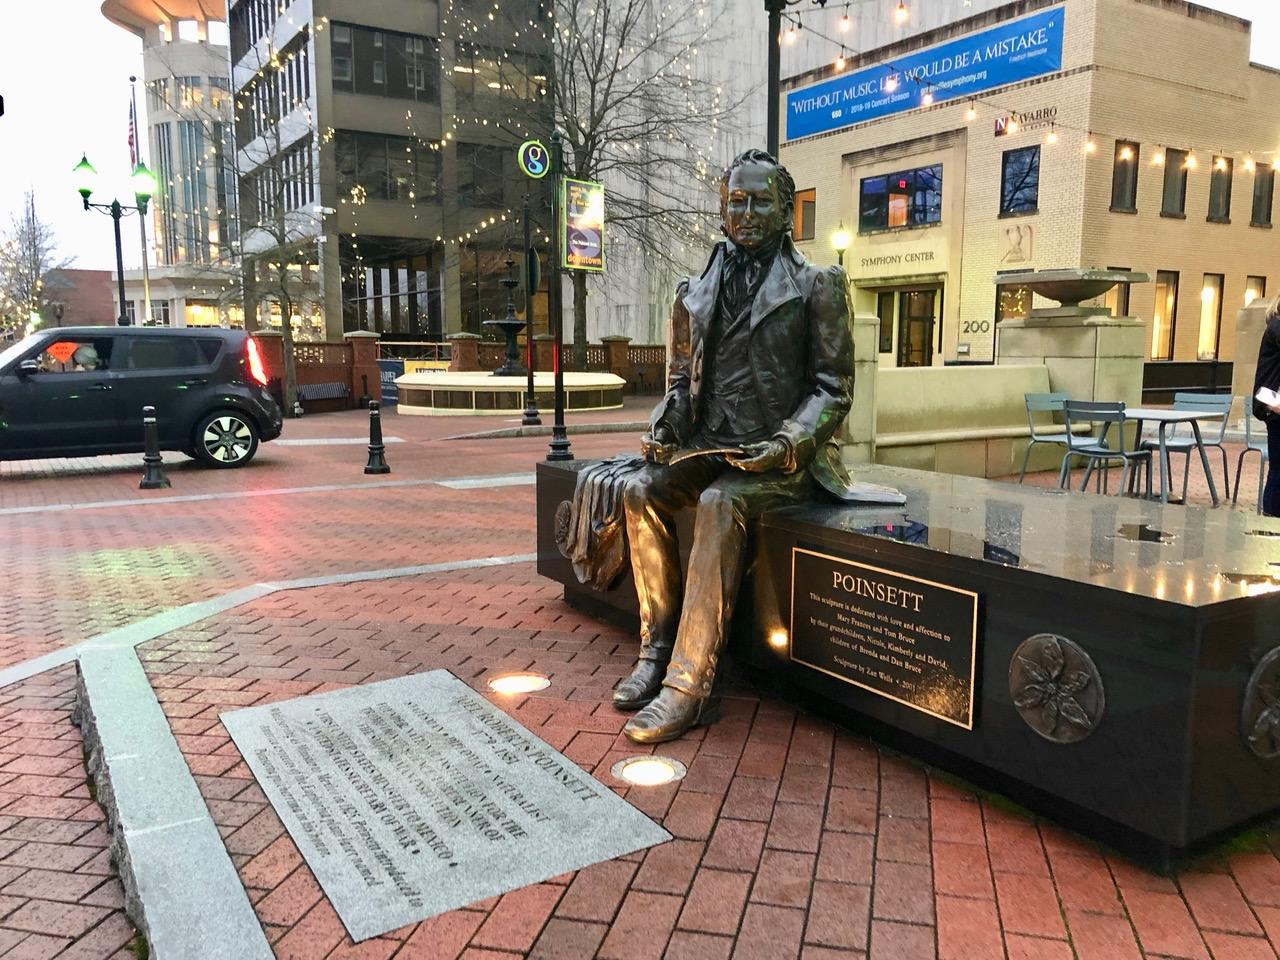 Downtown Greenville has several educational statues around town including this one of Joel Poinsett, who brought the poinsettia flower to the United States from Mexico.